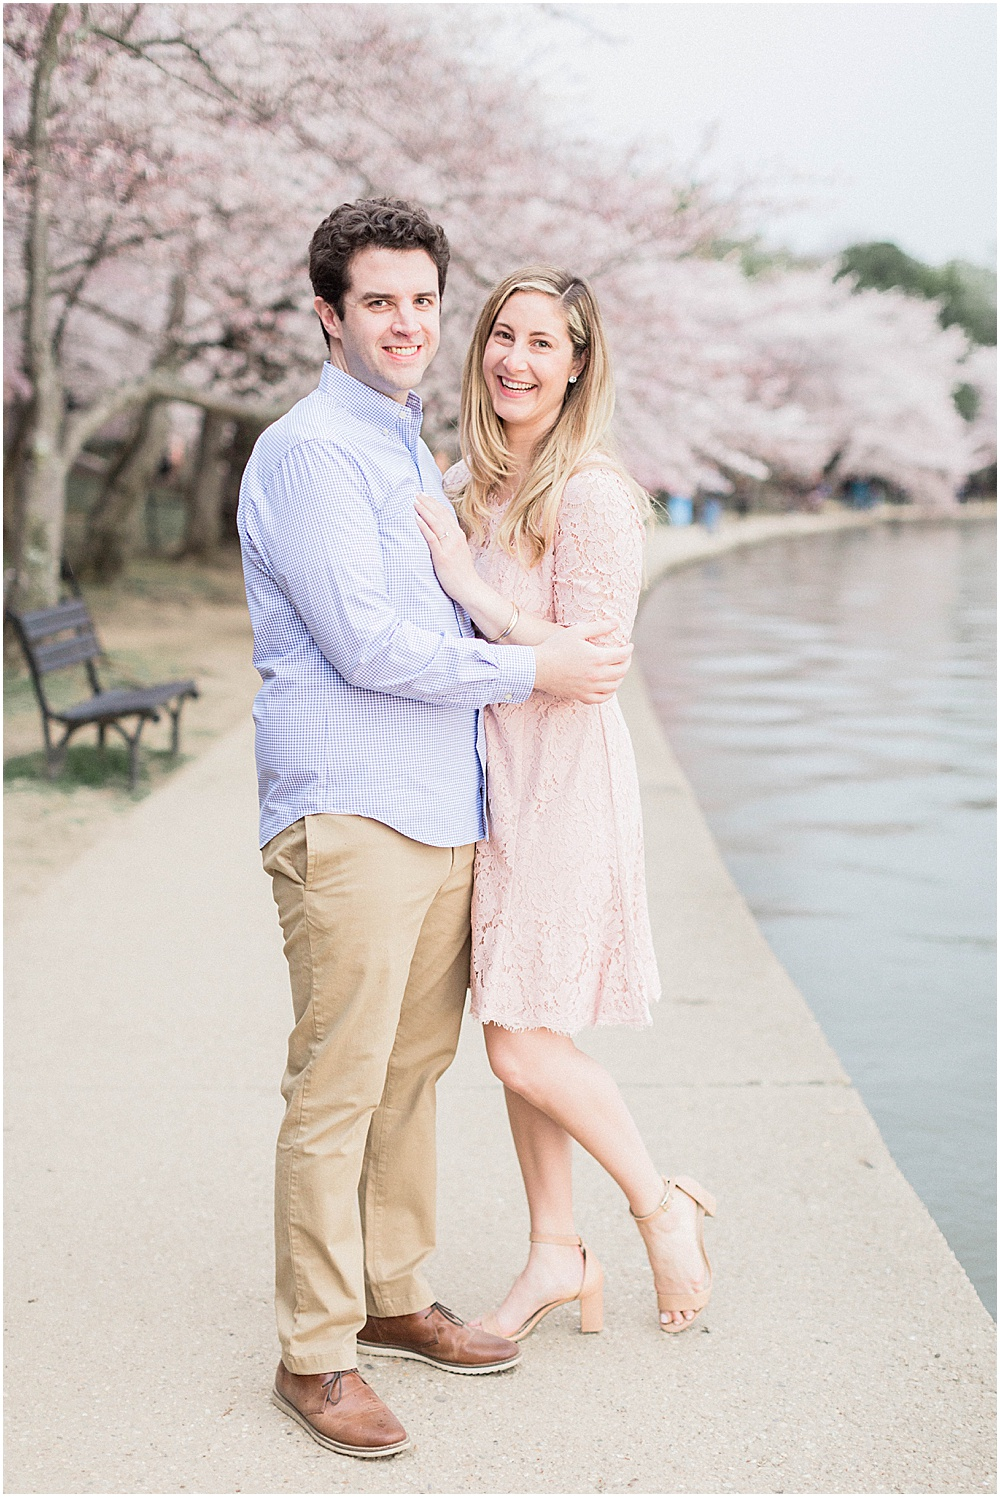 DC Cherry Blossom Engagement During the Festival at Sunrise